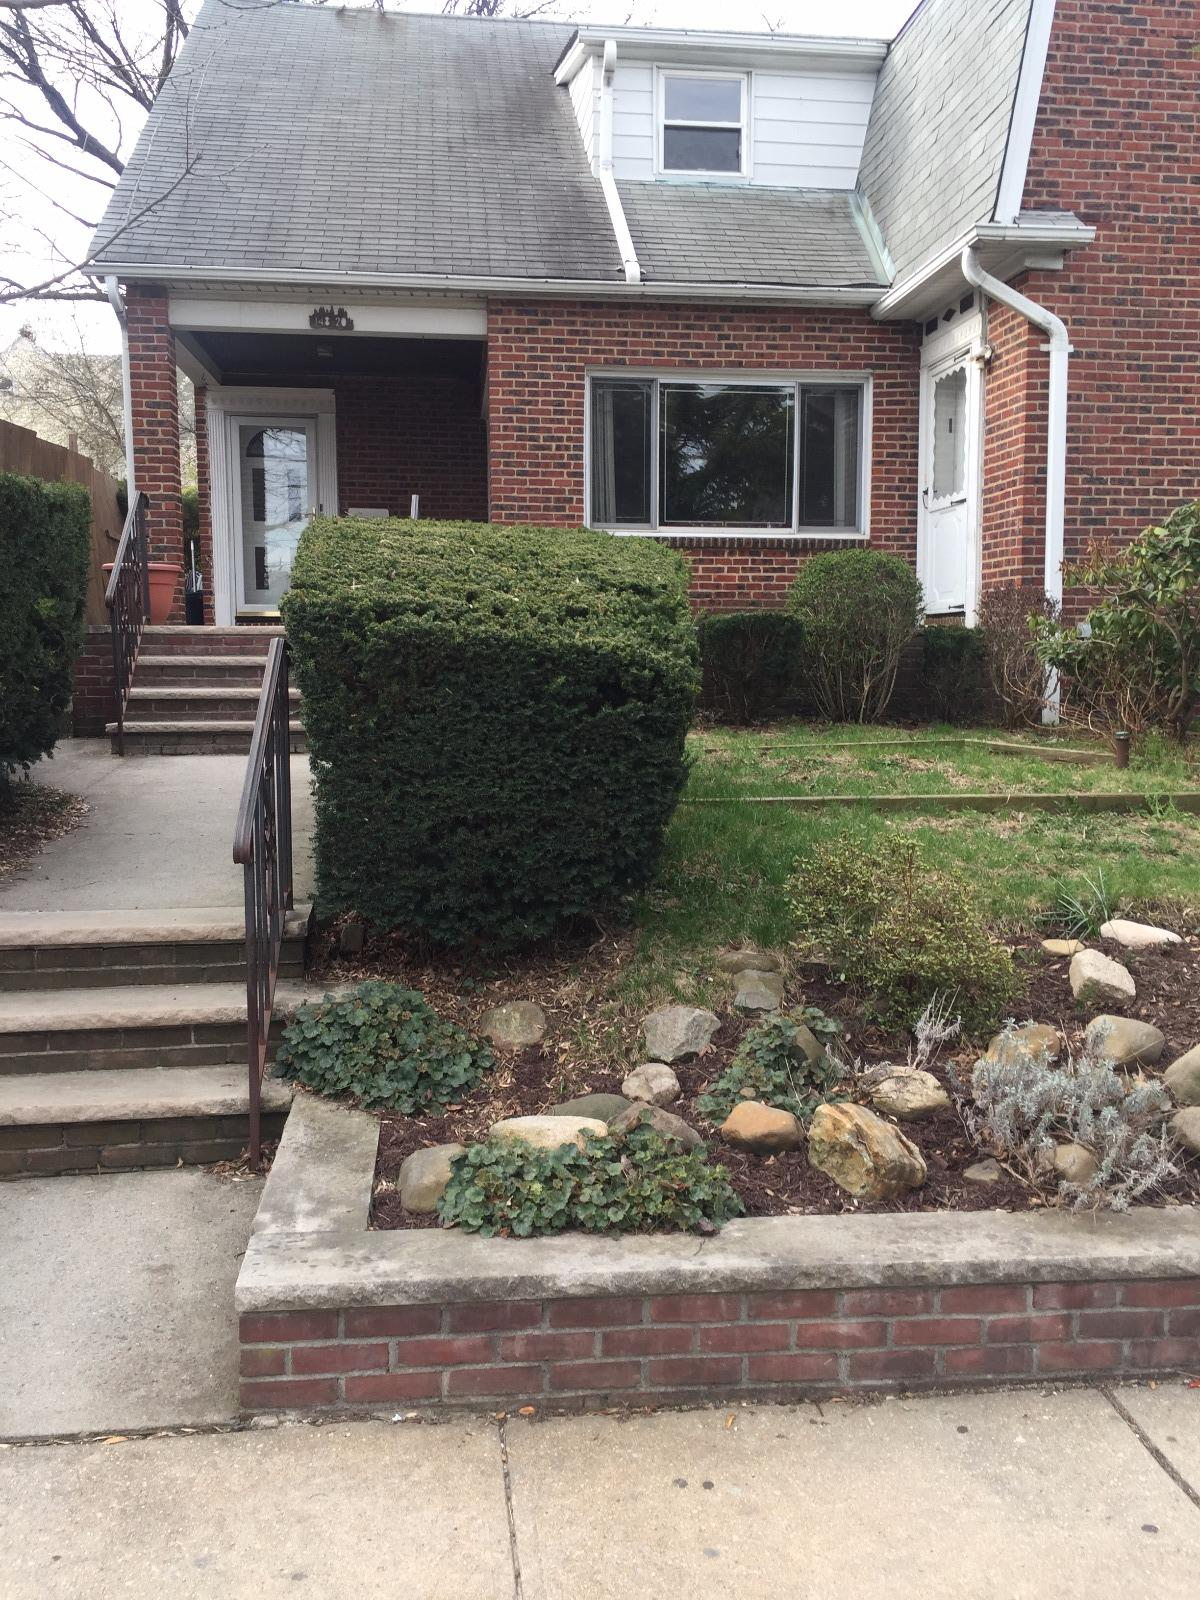 Beautiful Home - 4 Bedrooms - Great for SJU students